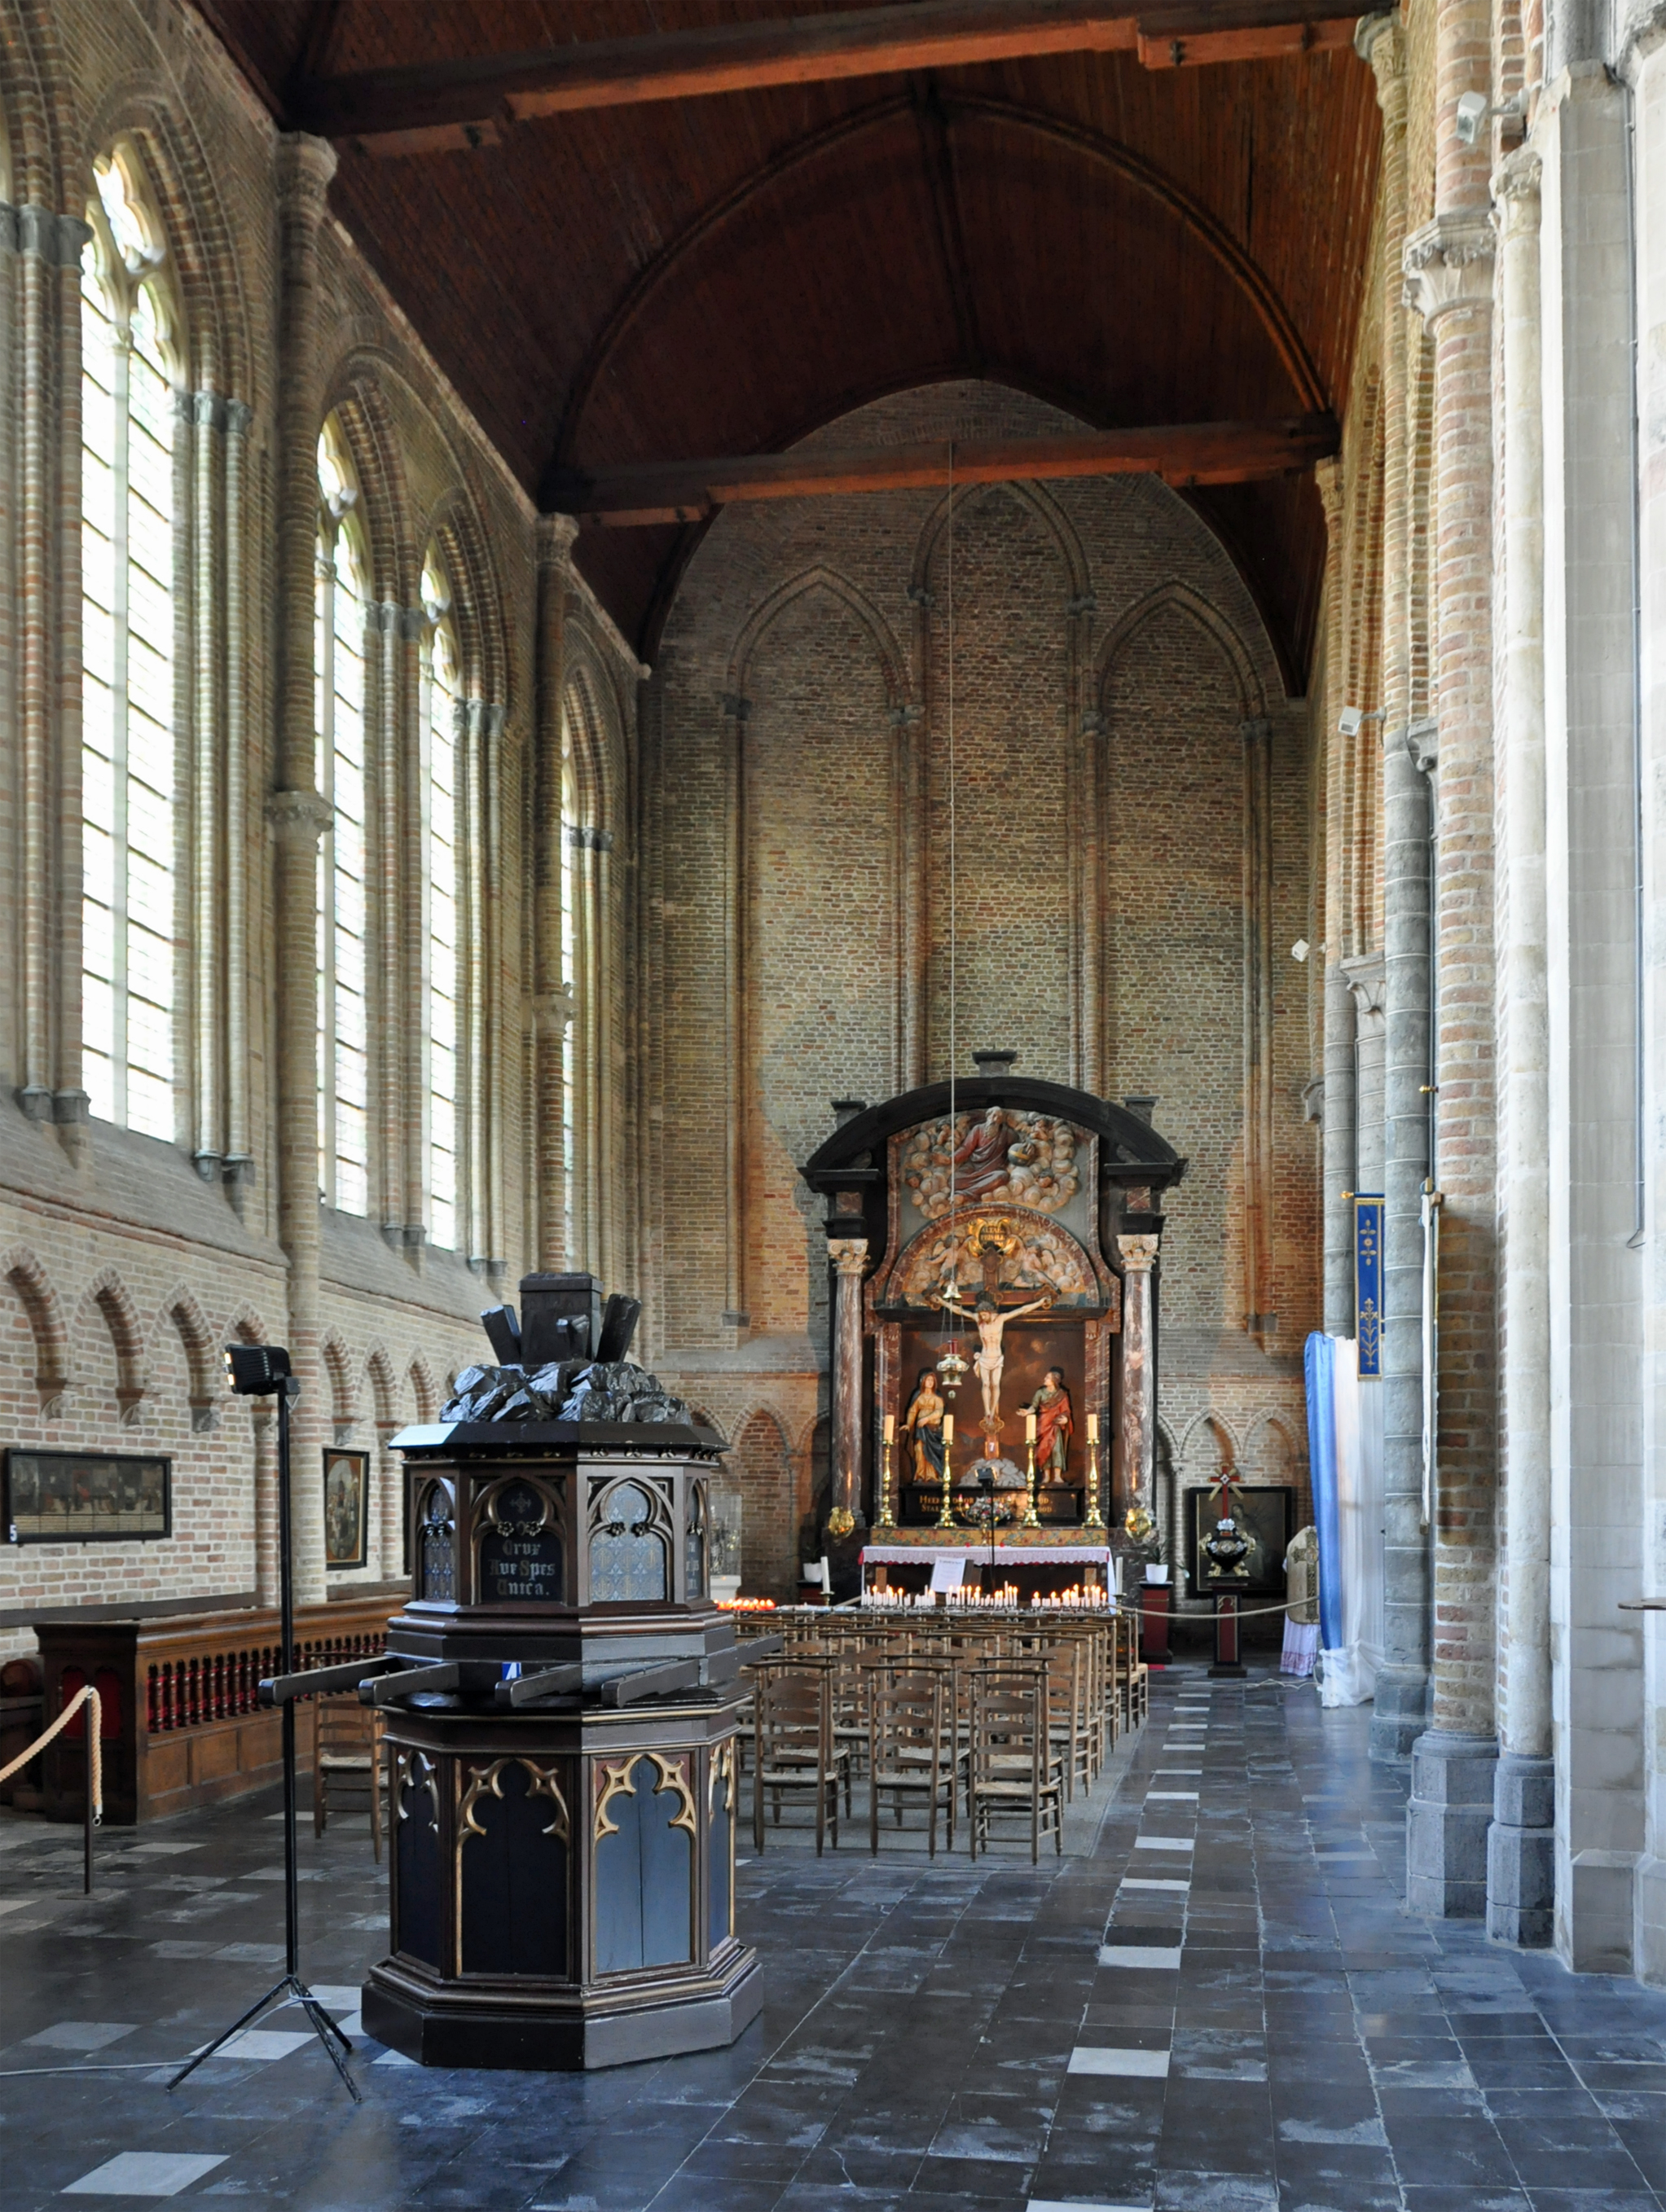 File damme kerk wikimedia commons for Damme interieur